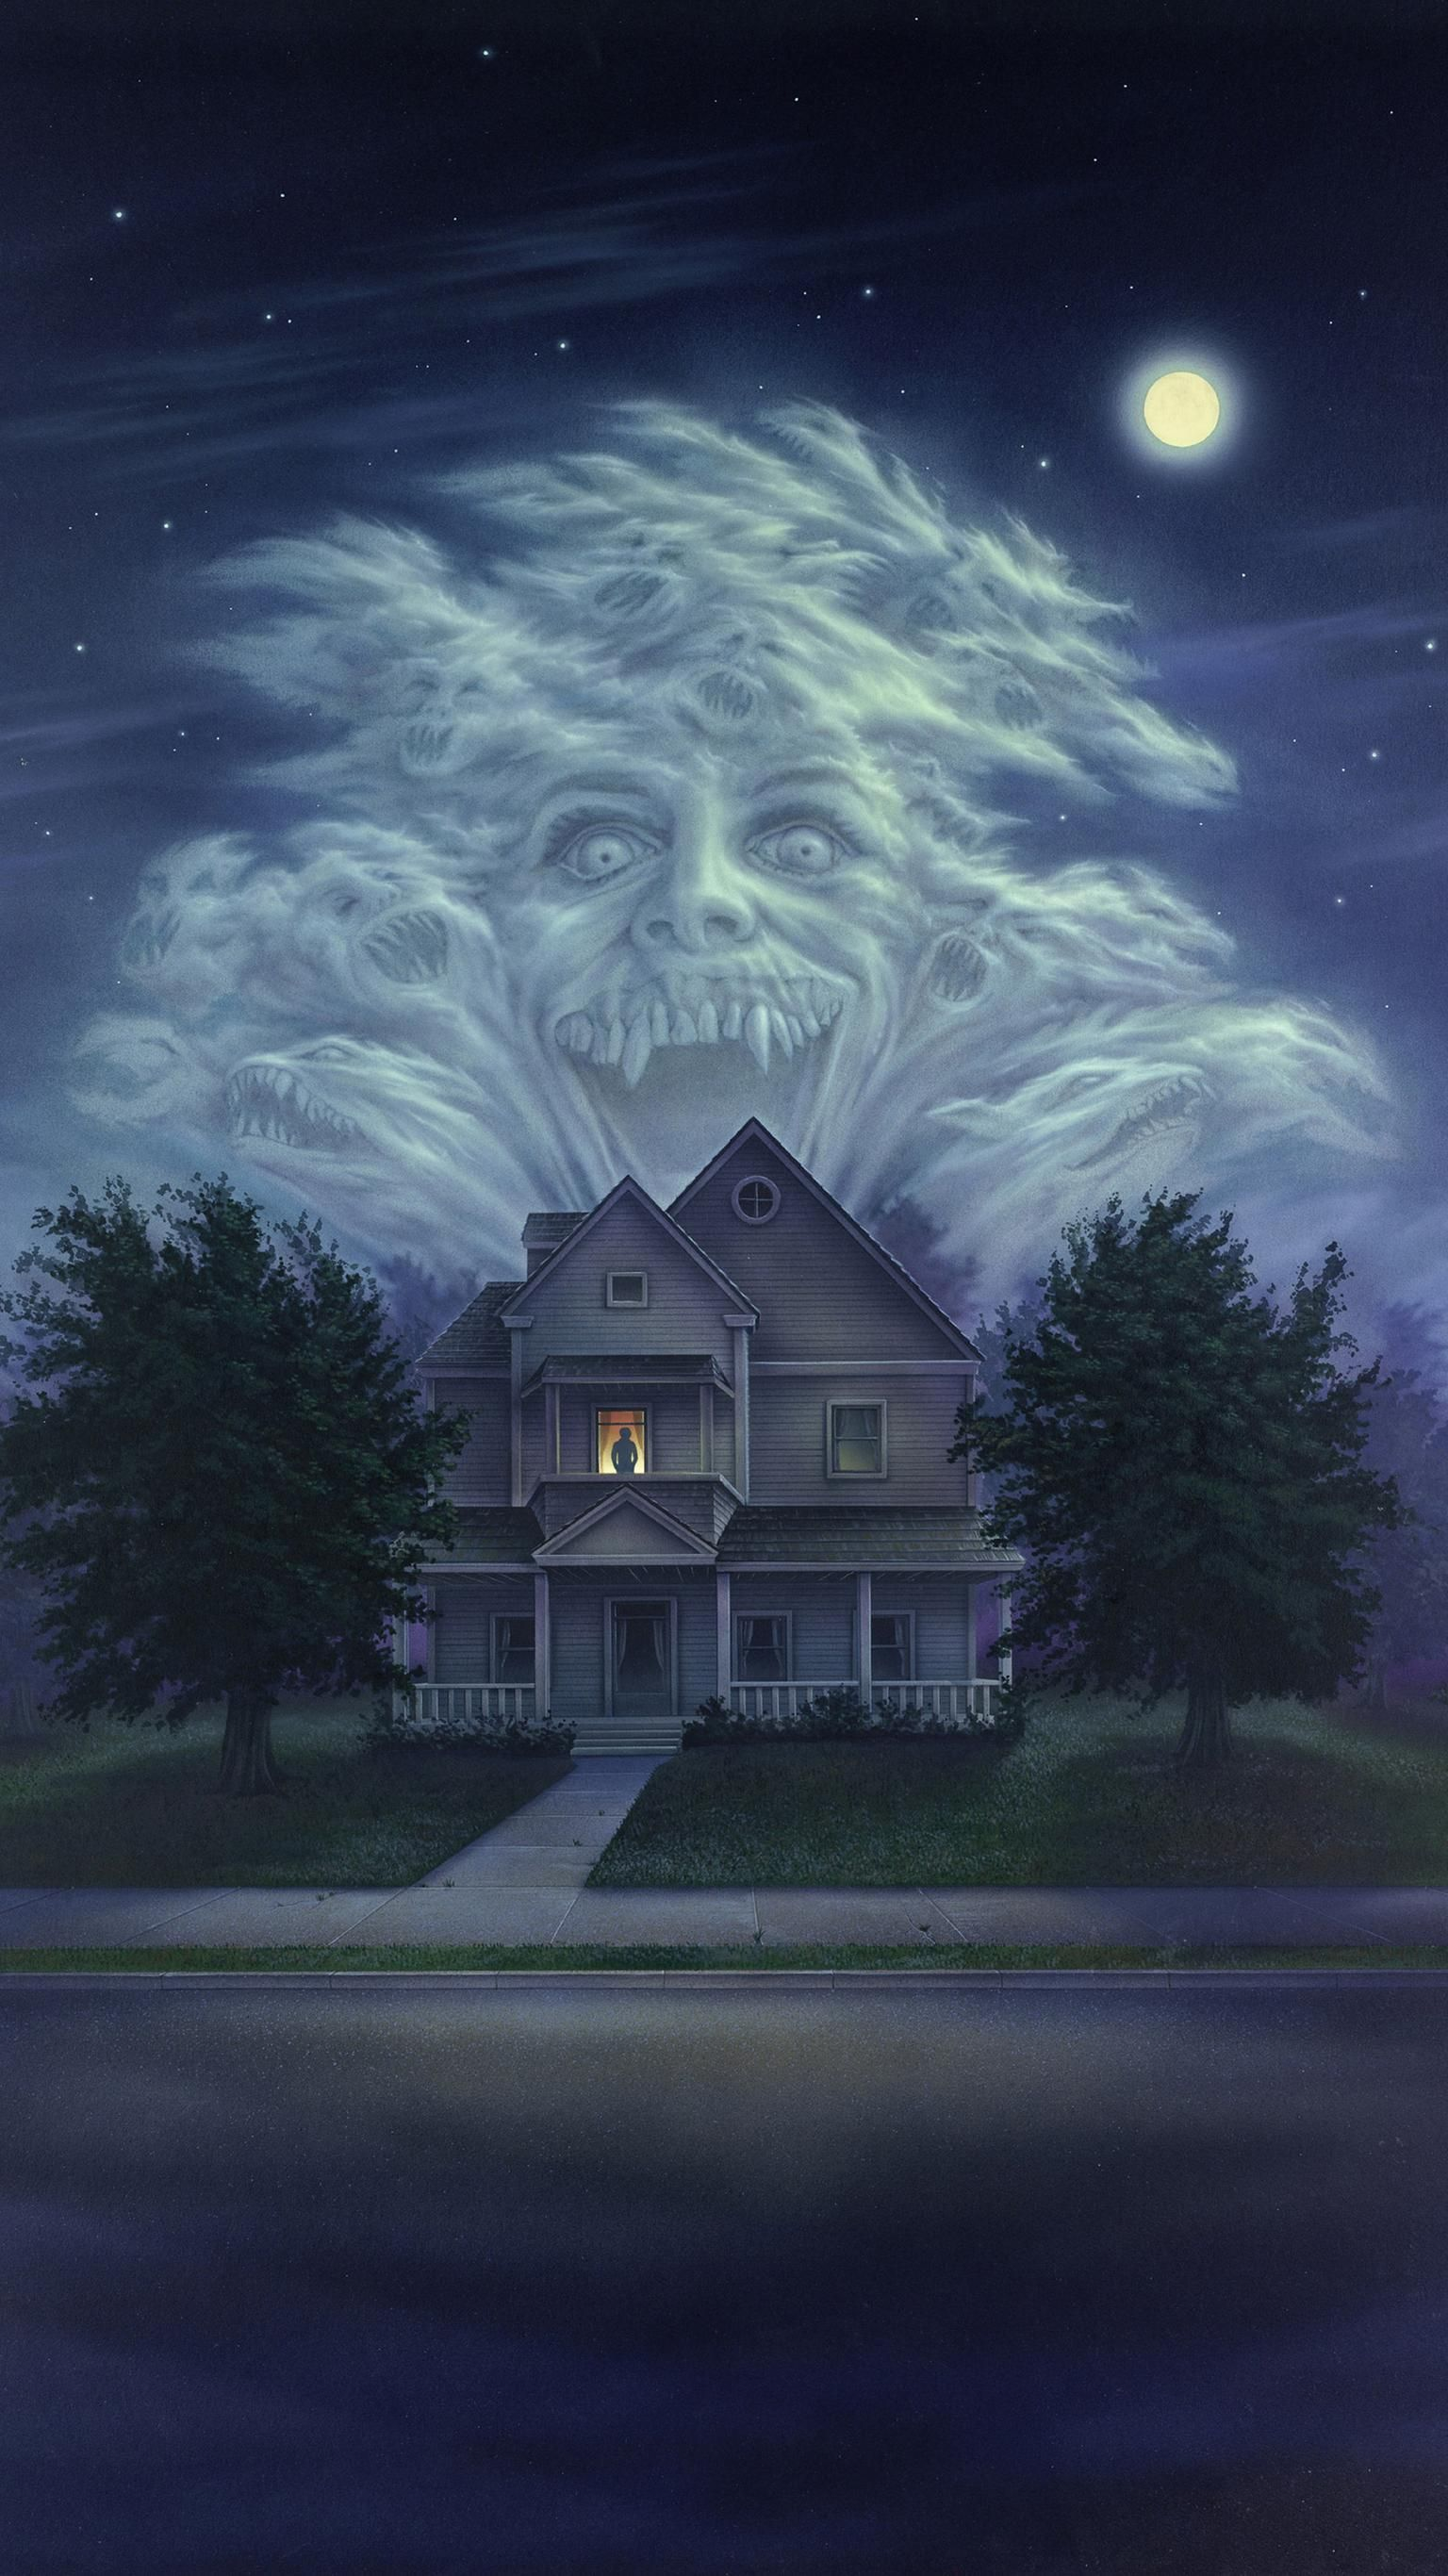 Halloween Phone Wallpapers Imagenes De Terror Fondos De